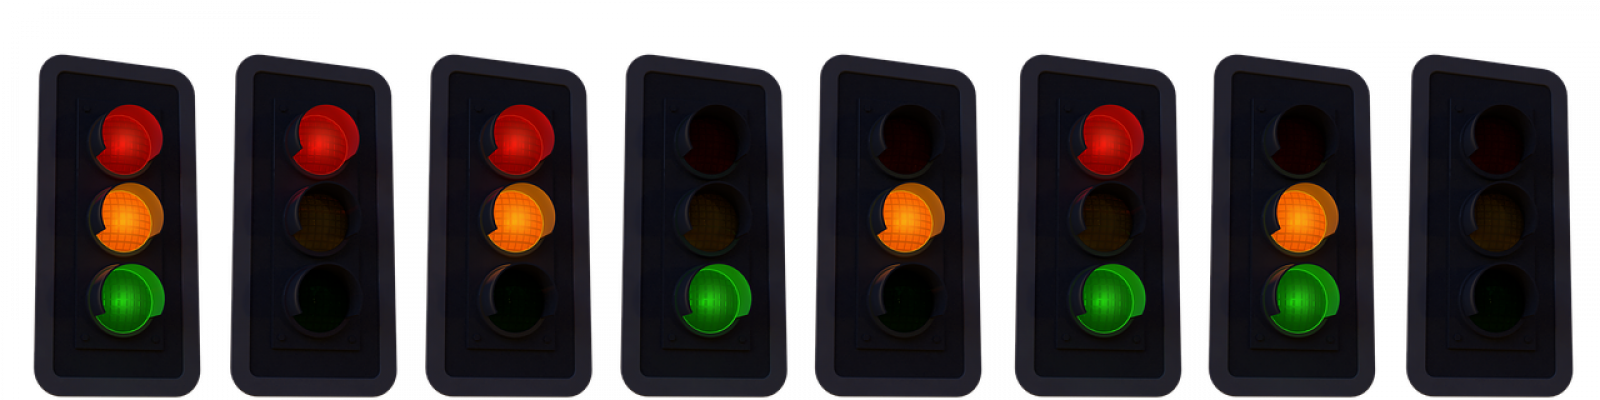 cropped-traffic-lights-2147790_1280.png